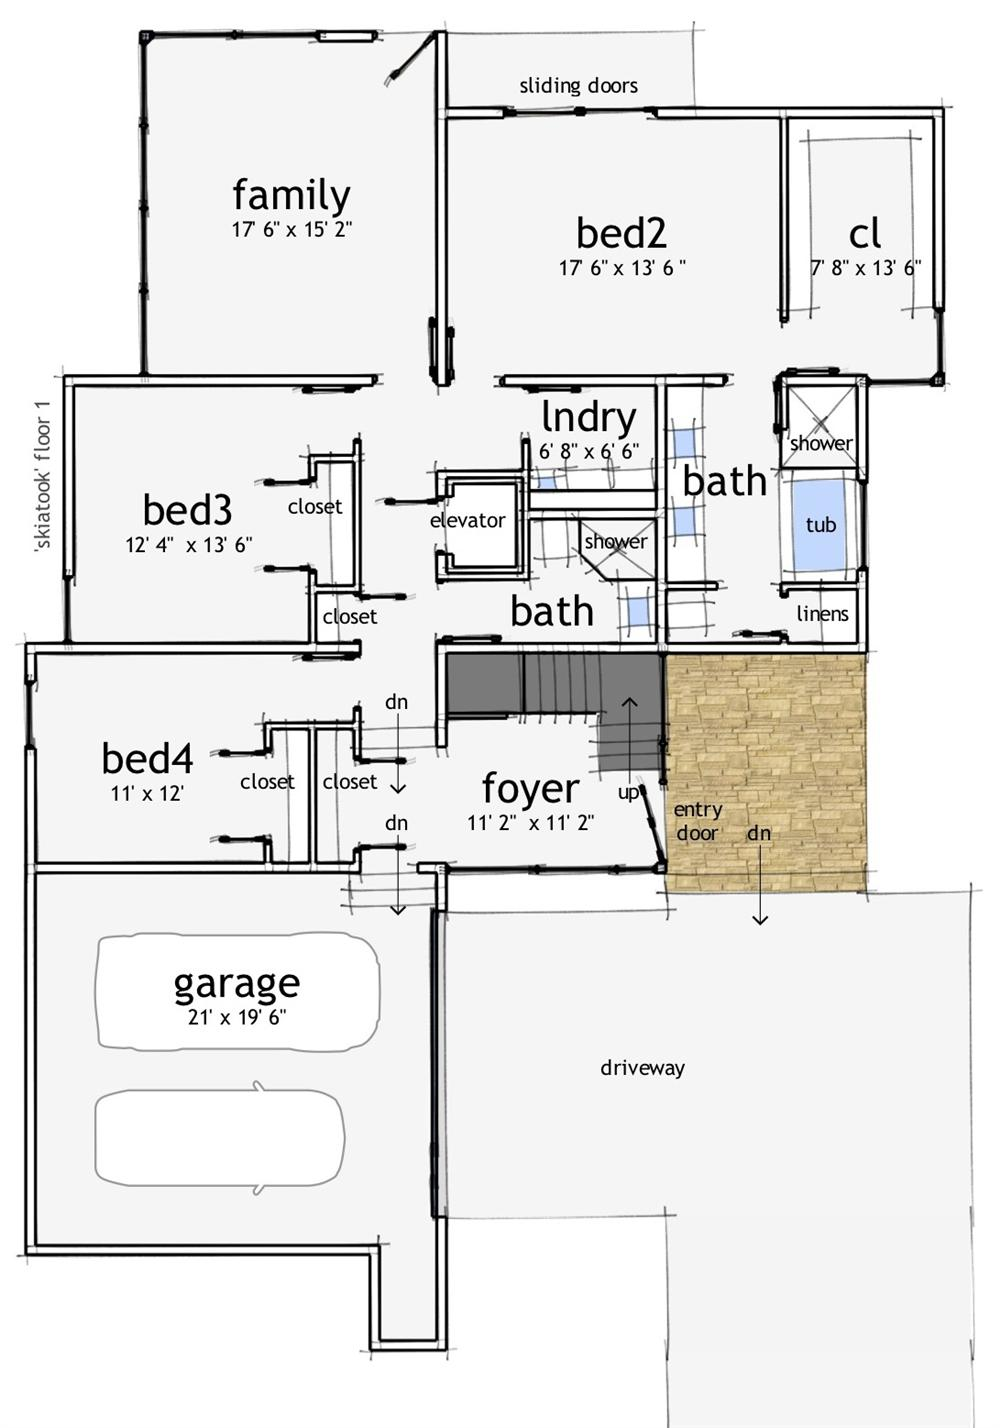 654280 One and a half story 4 bedroom  3 5 bath Southern Country Farmhouse style house plan in addition Hwepl11283 also Floor Plan Friday Big Double Storey 5 Bedrooms moreover Golden Ratio In Architecture together with 1953 Square Feet 2 Bedroom 2 5 Bathroom 2 Garage Modern 39702. on modern home floor plans